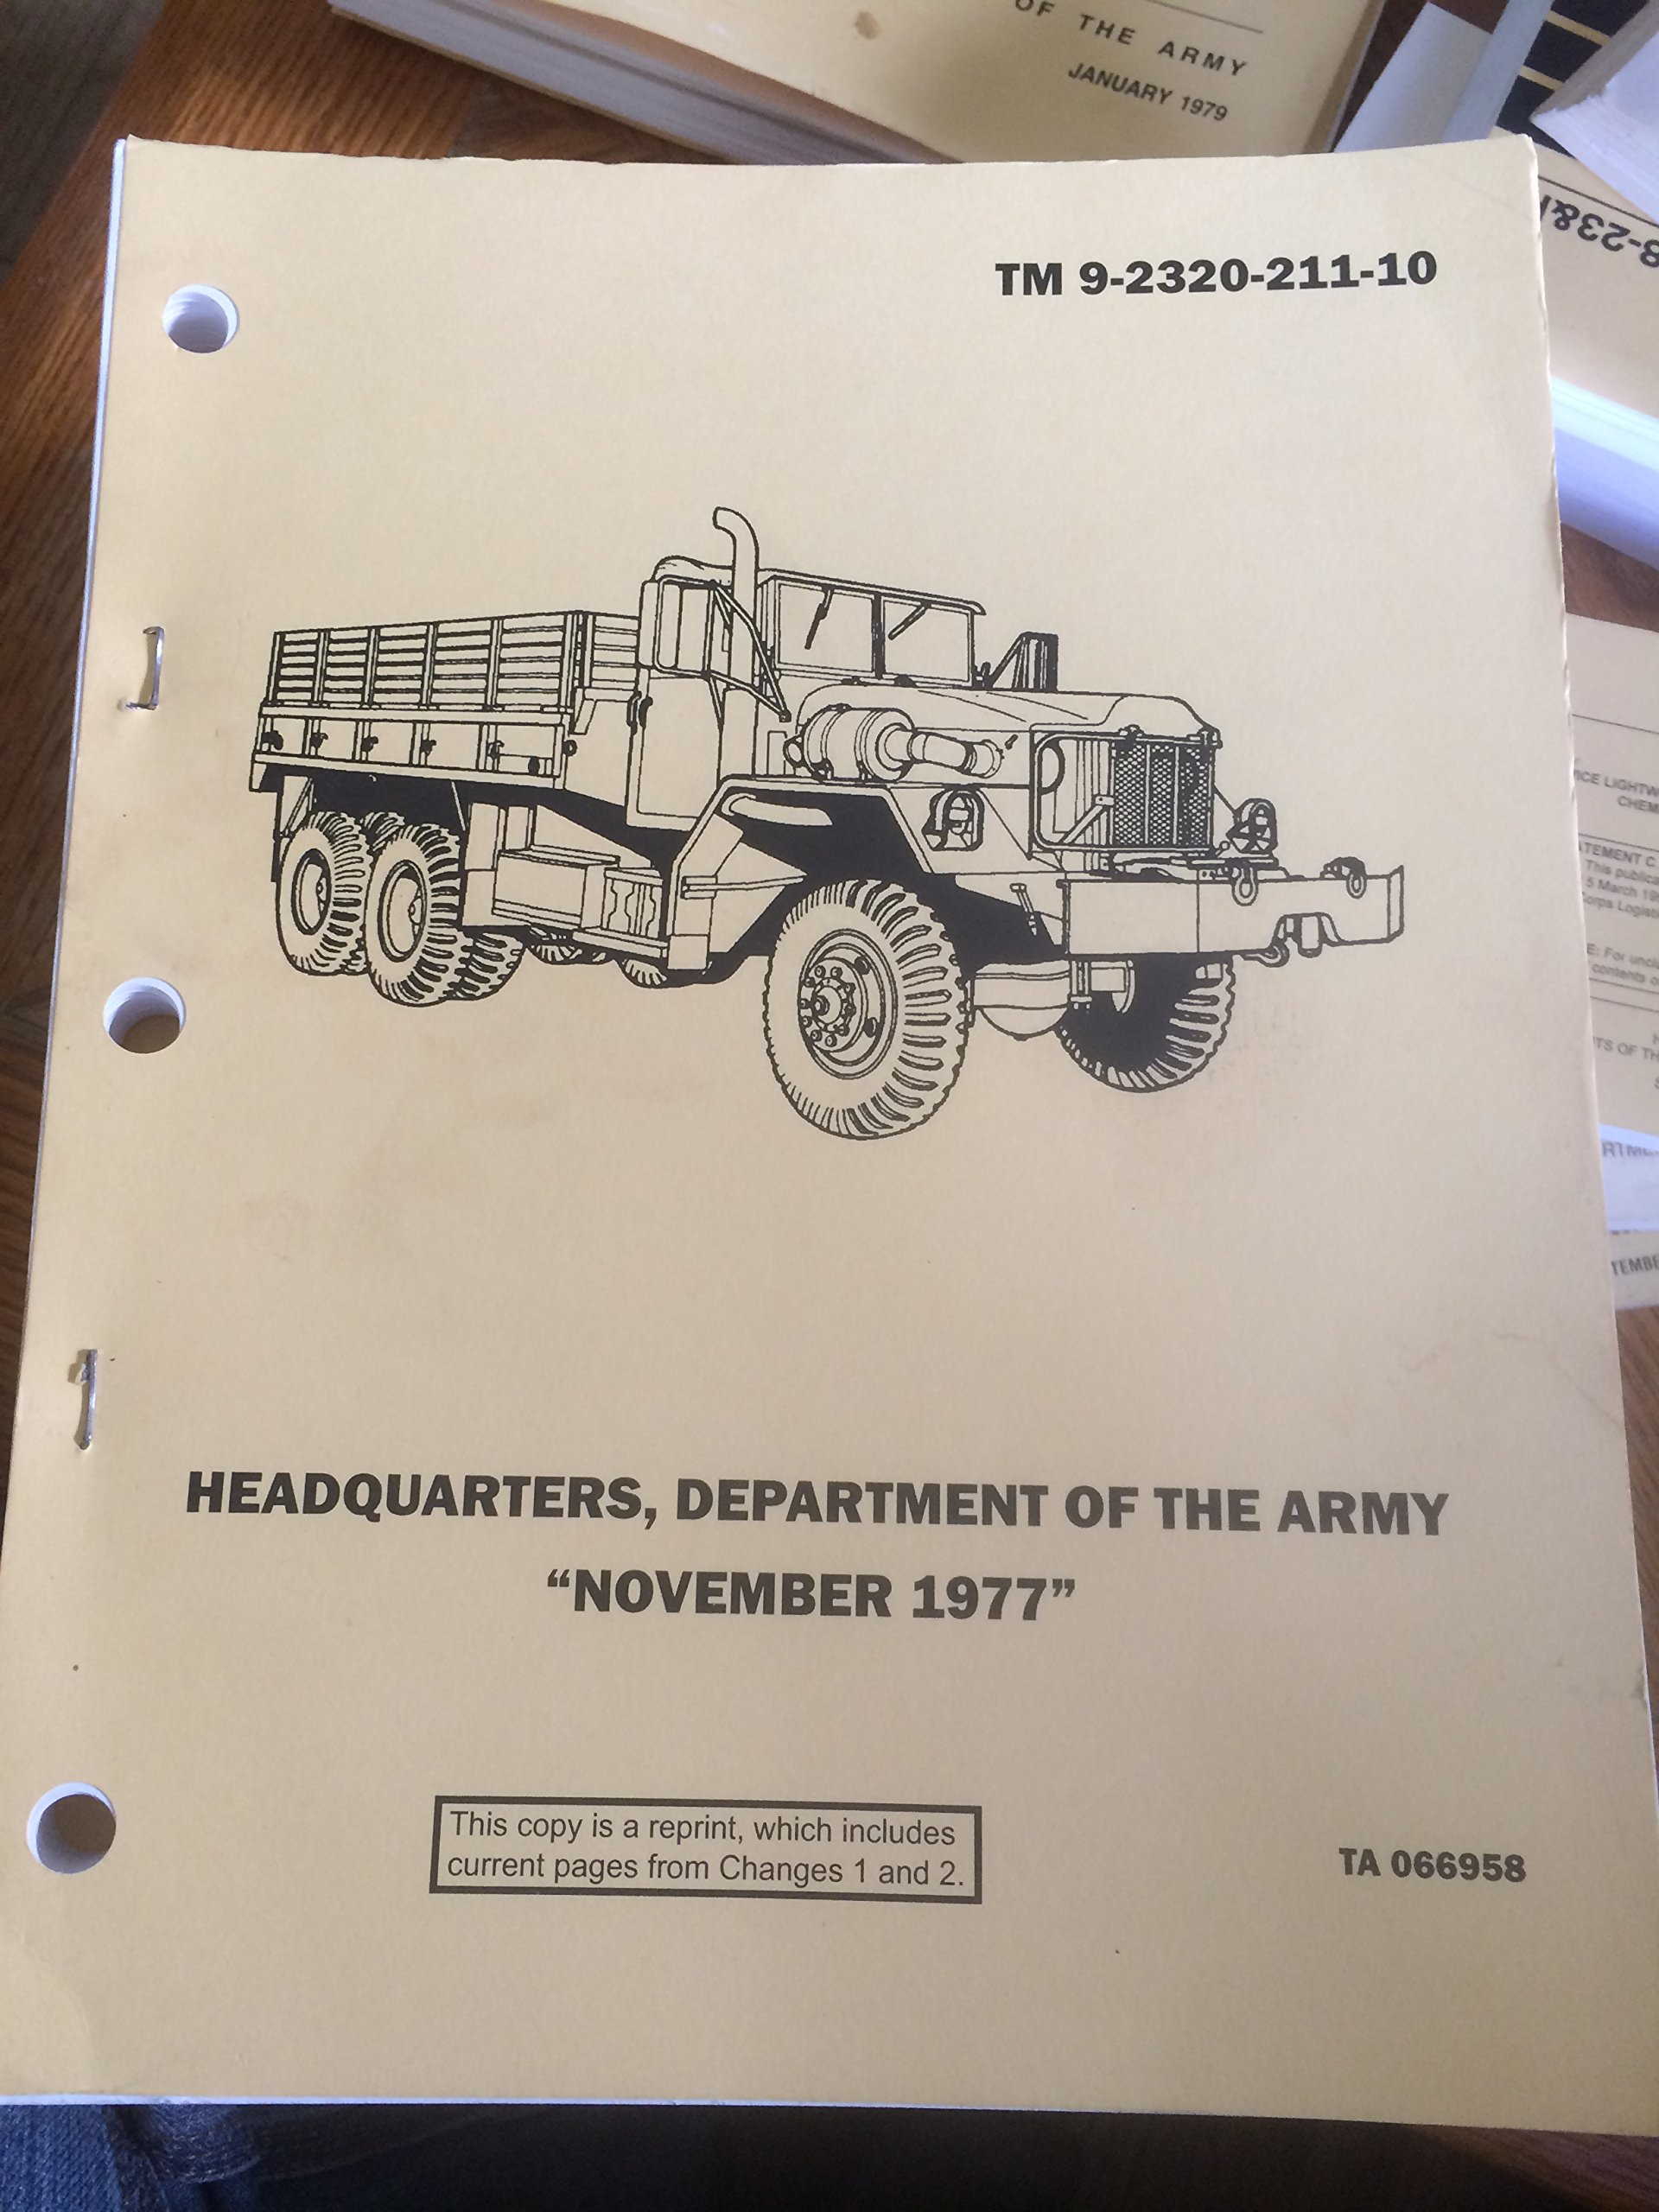 Operator's Manual for Truck, 5-Ton, 6X6, M39 Series: Amazon com: Books